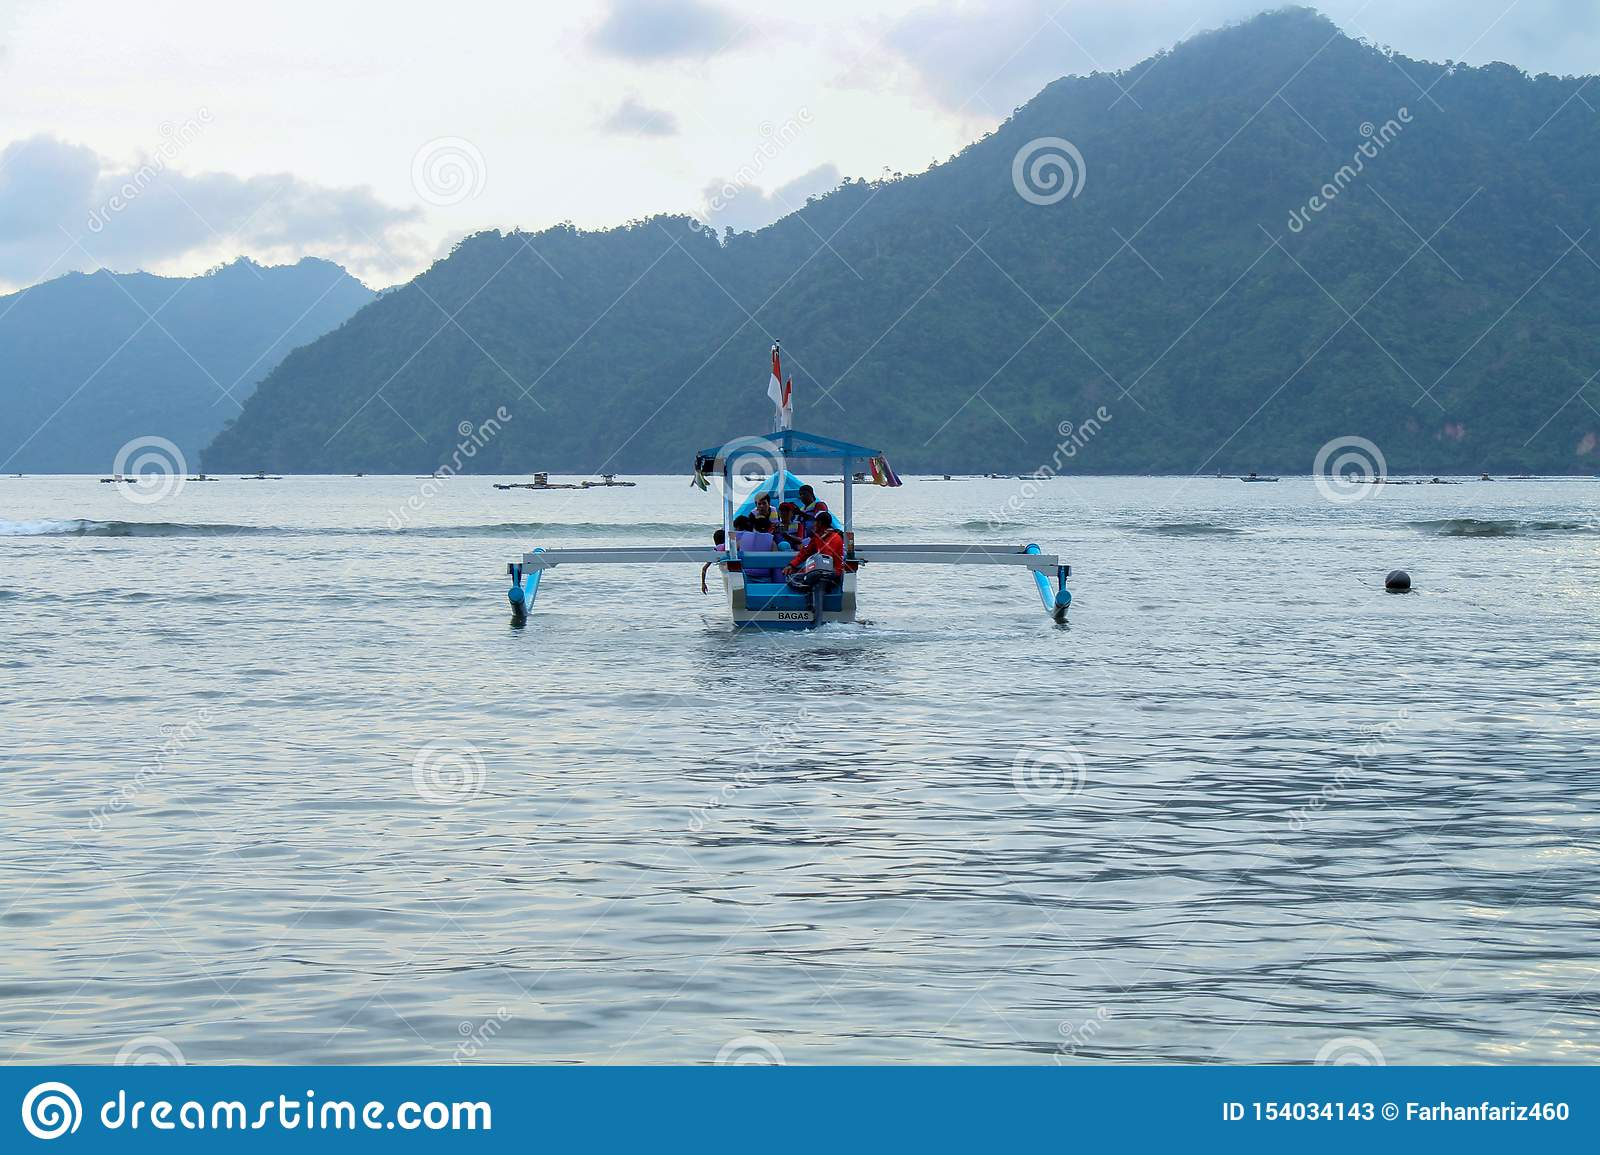 Nature - Some visitors who enjoy boats